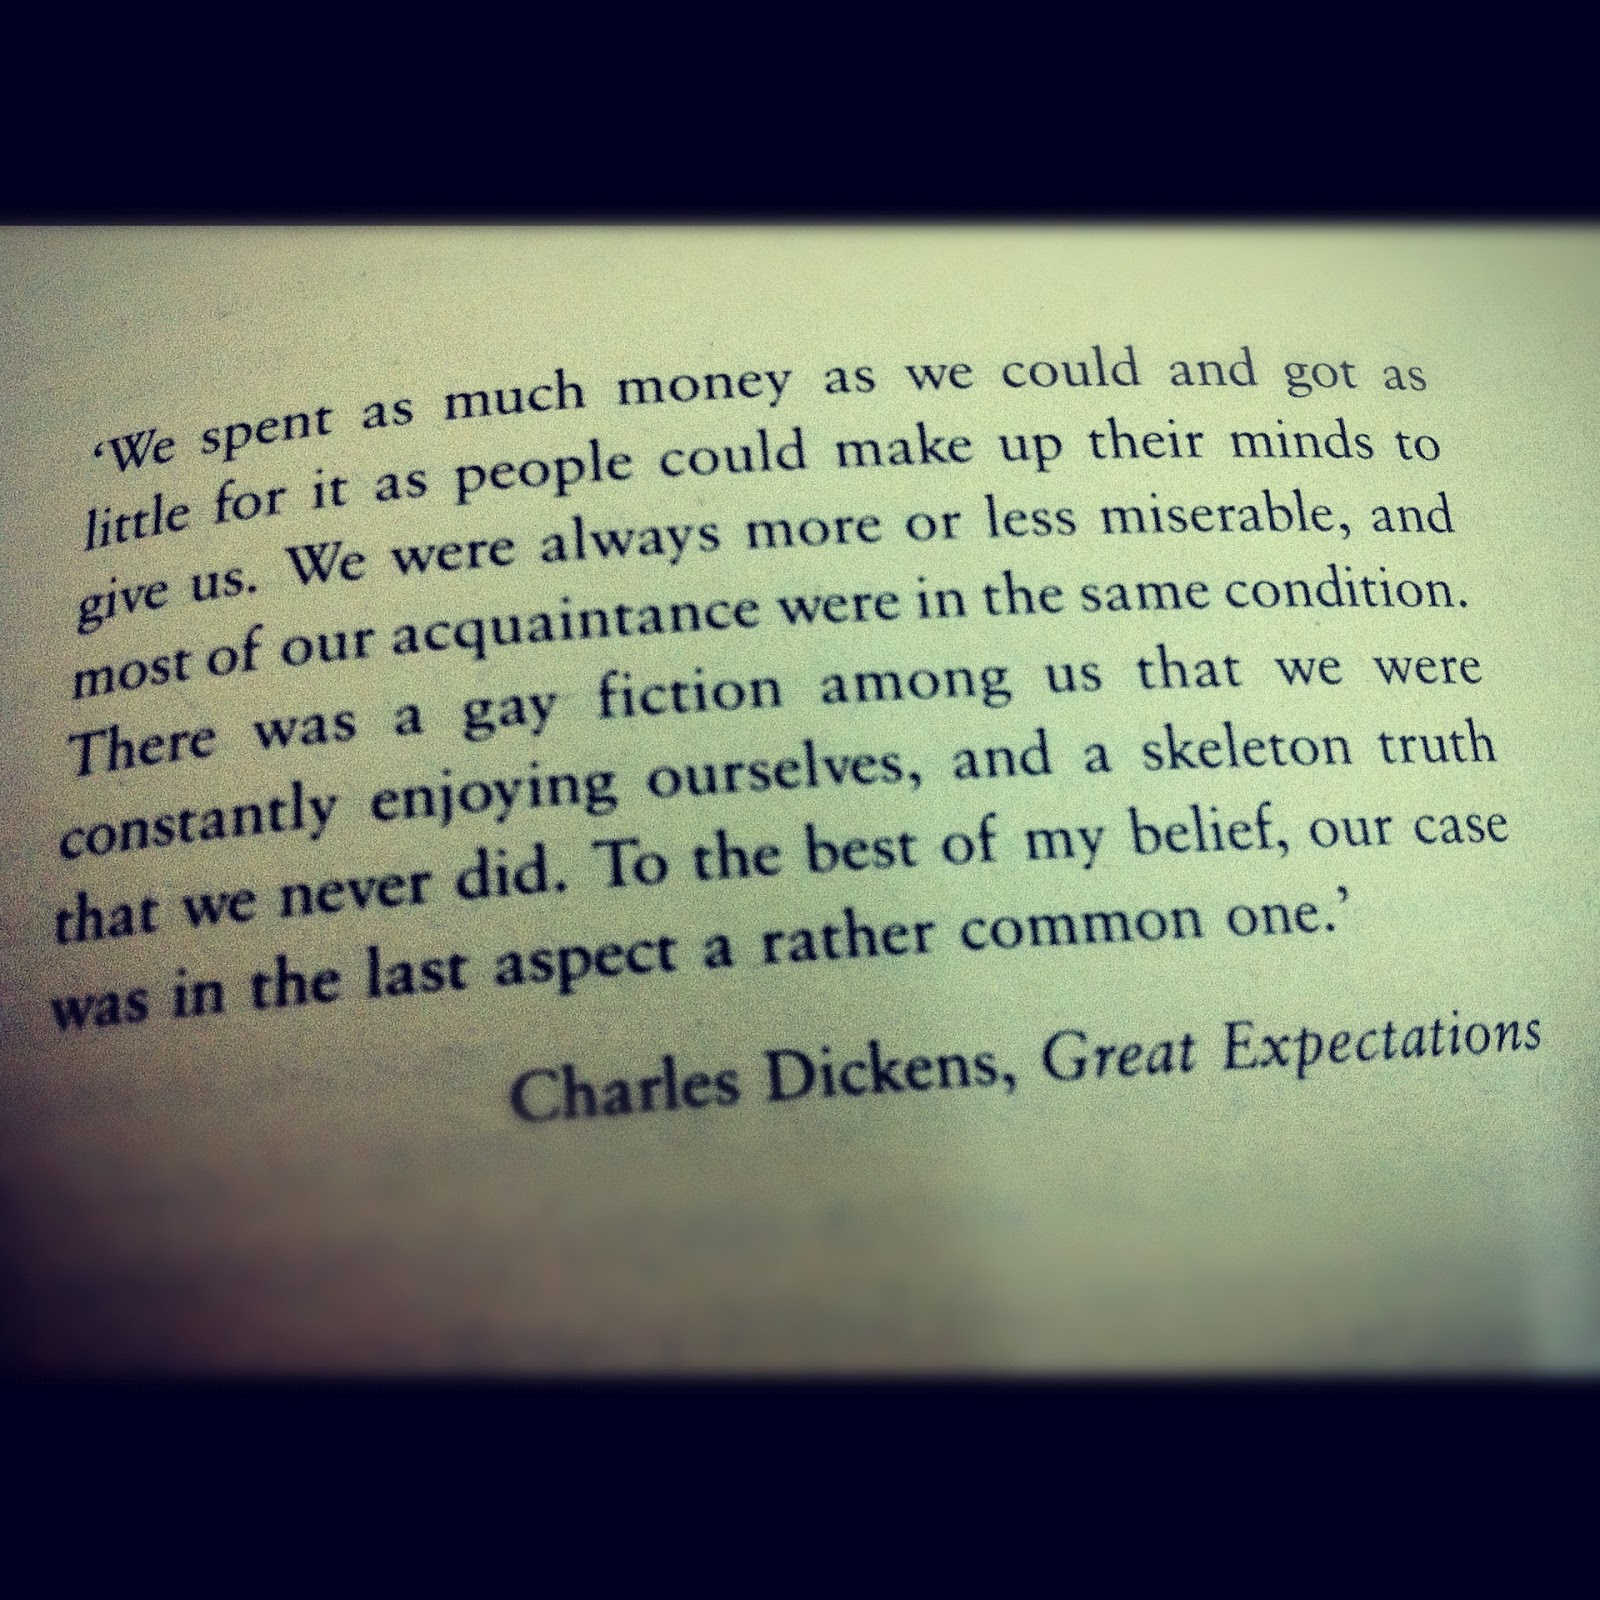 a description of the great expectations by charles dickens Free essay: importance of setting in great expectations charles dickens viewed london as a place of economic competition and death in great expectations, he.